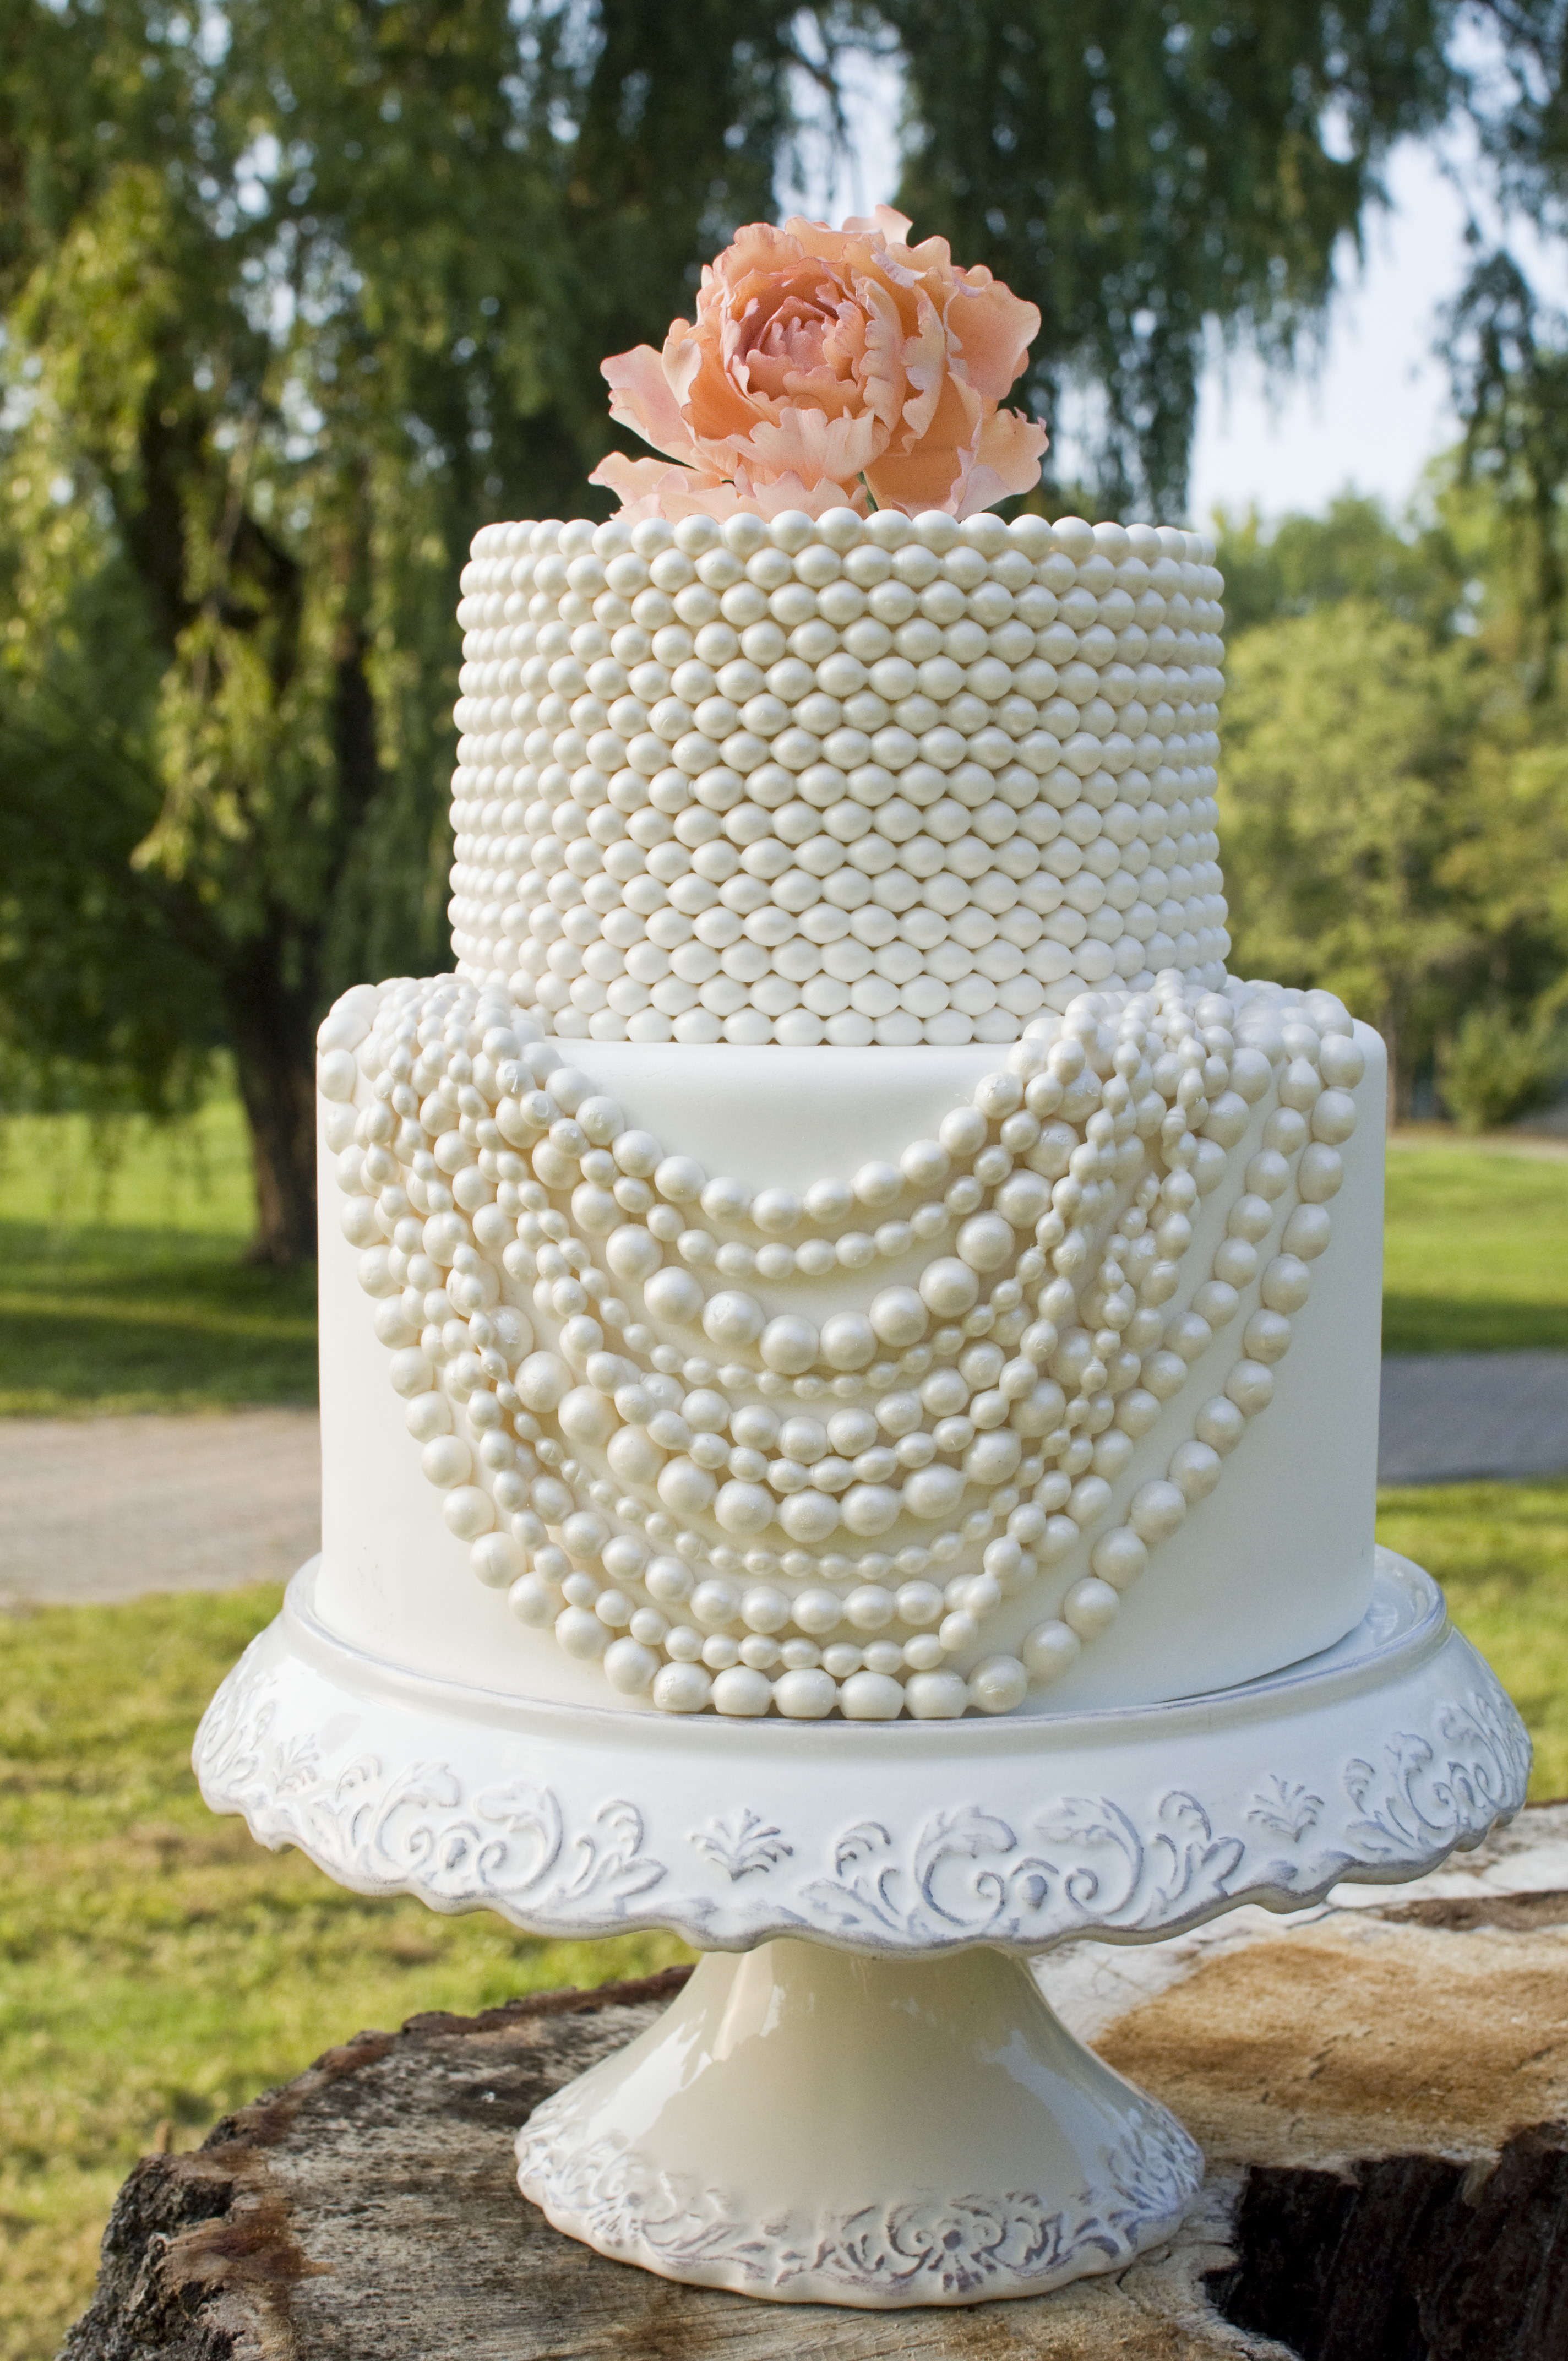 Wedding Cakes Pearls  Visions of Pearls